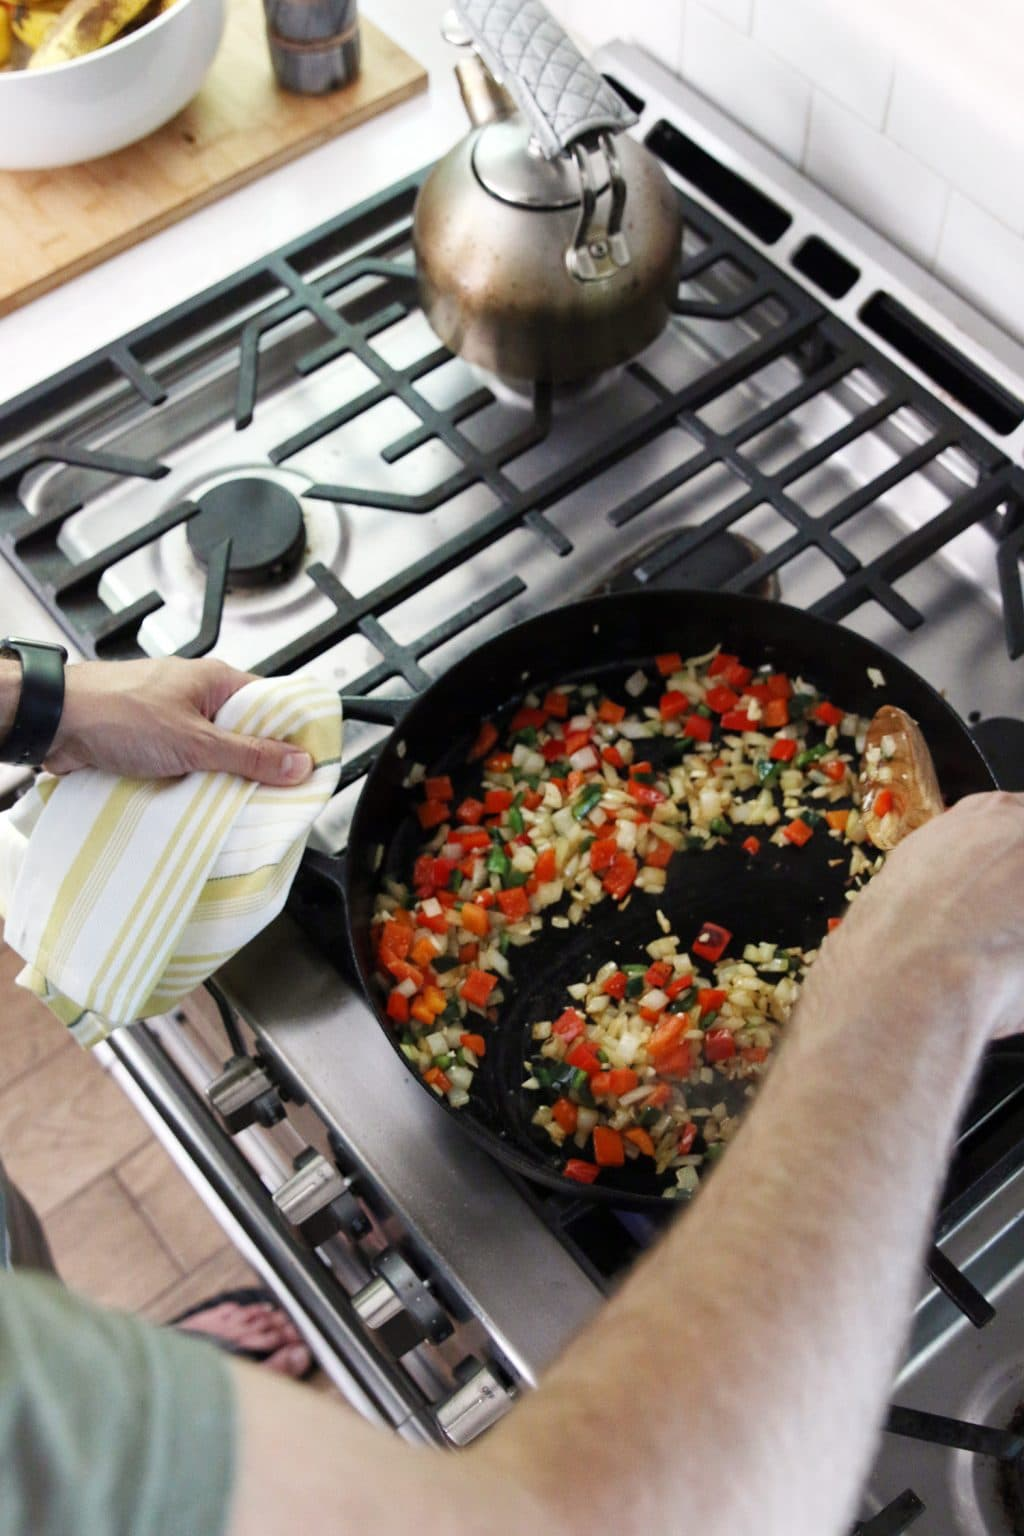 Sauteeing vegetables for paella